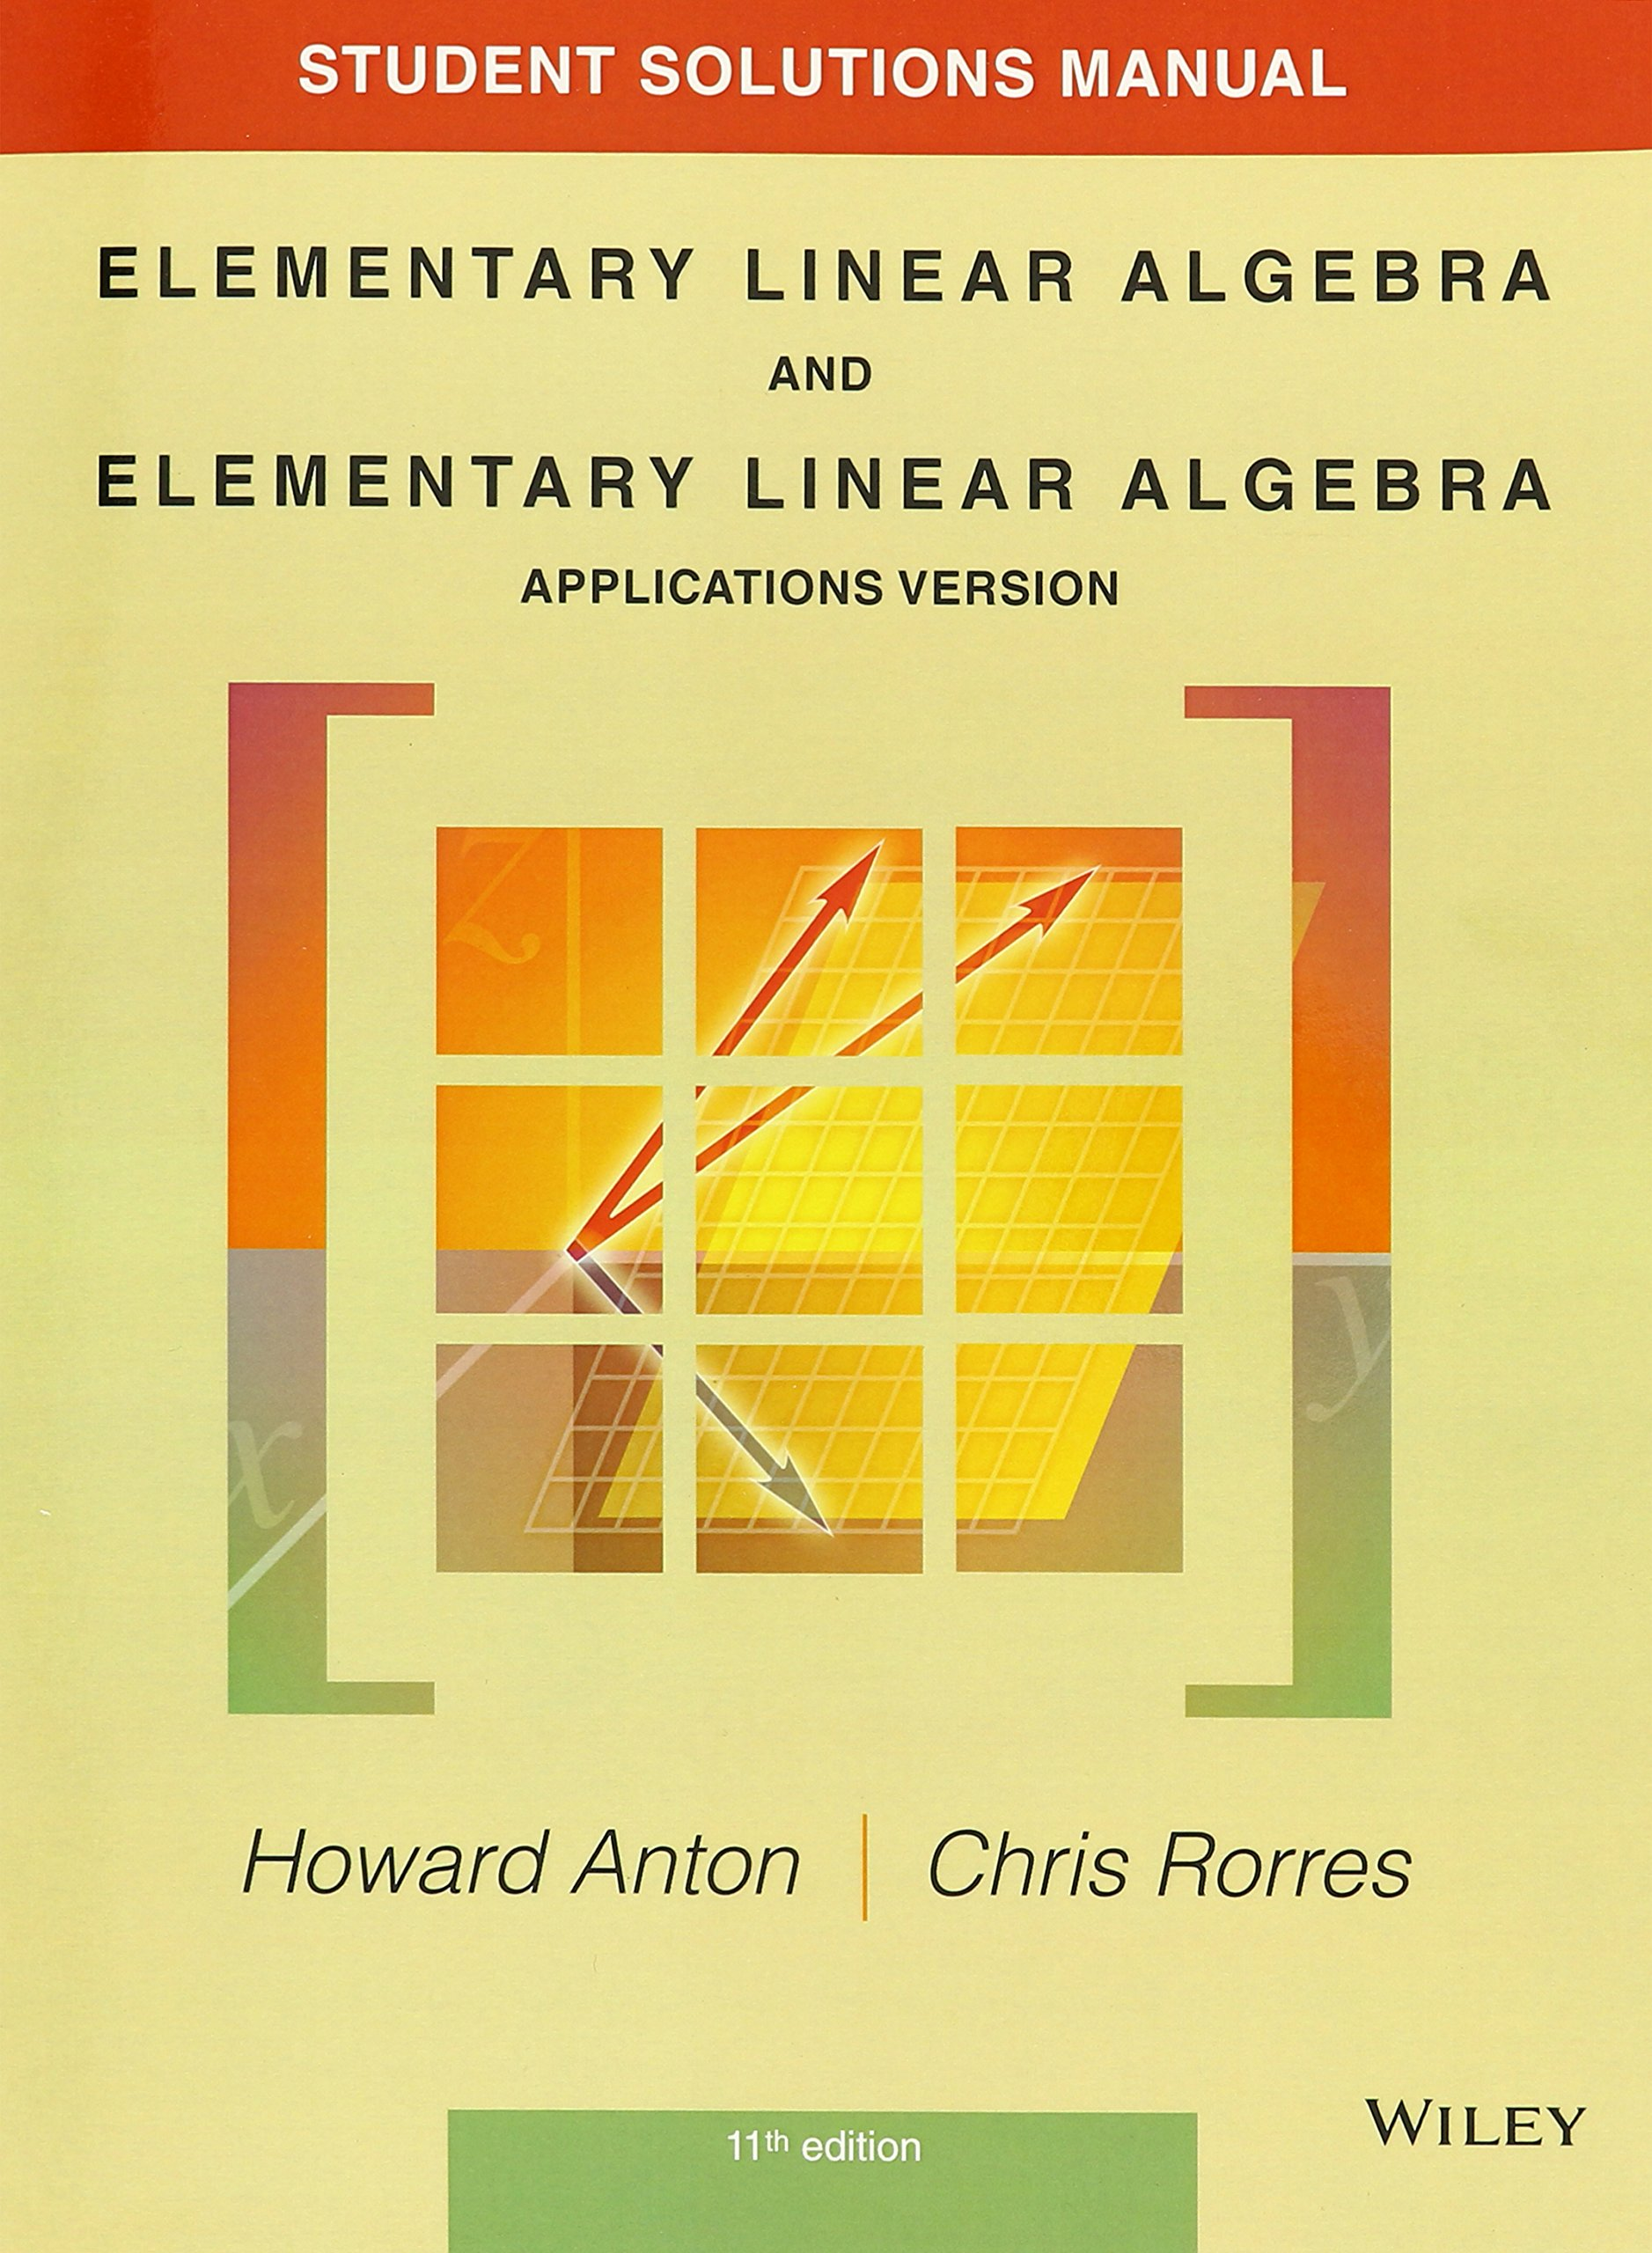 Student Solutions Manual to accompany Elementary Linear Algebra,  Applications version, 11e: Howard Anton: 9781118464427: Books - Amazon.ca